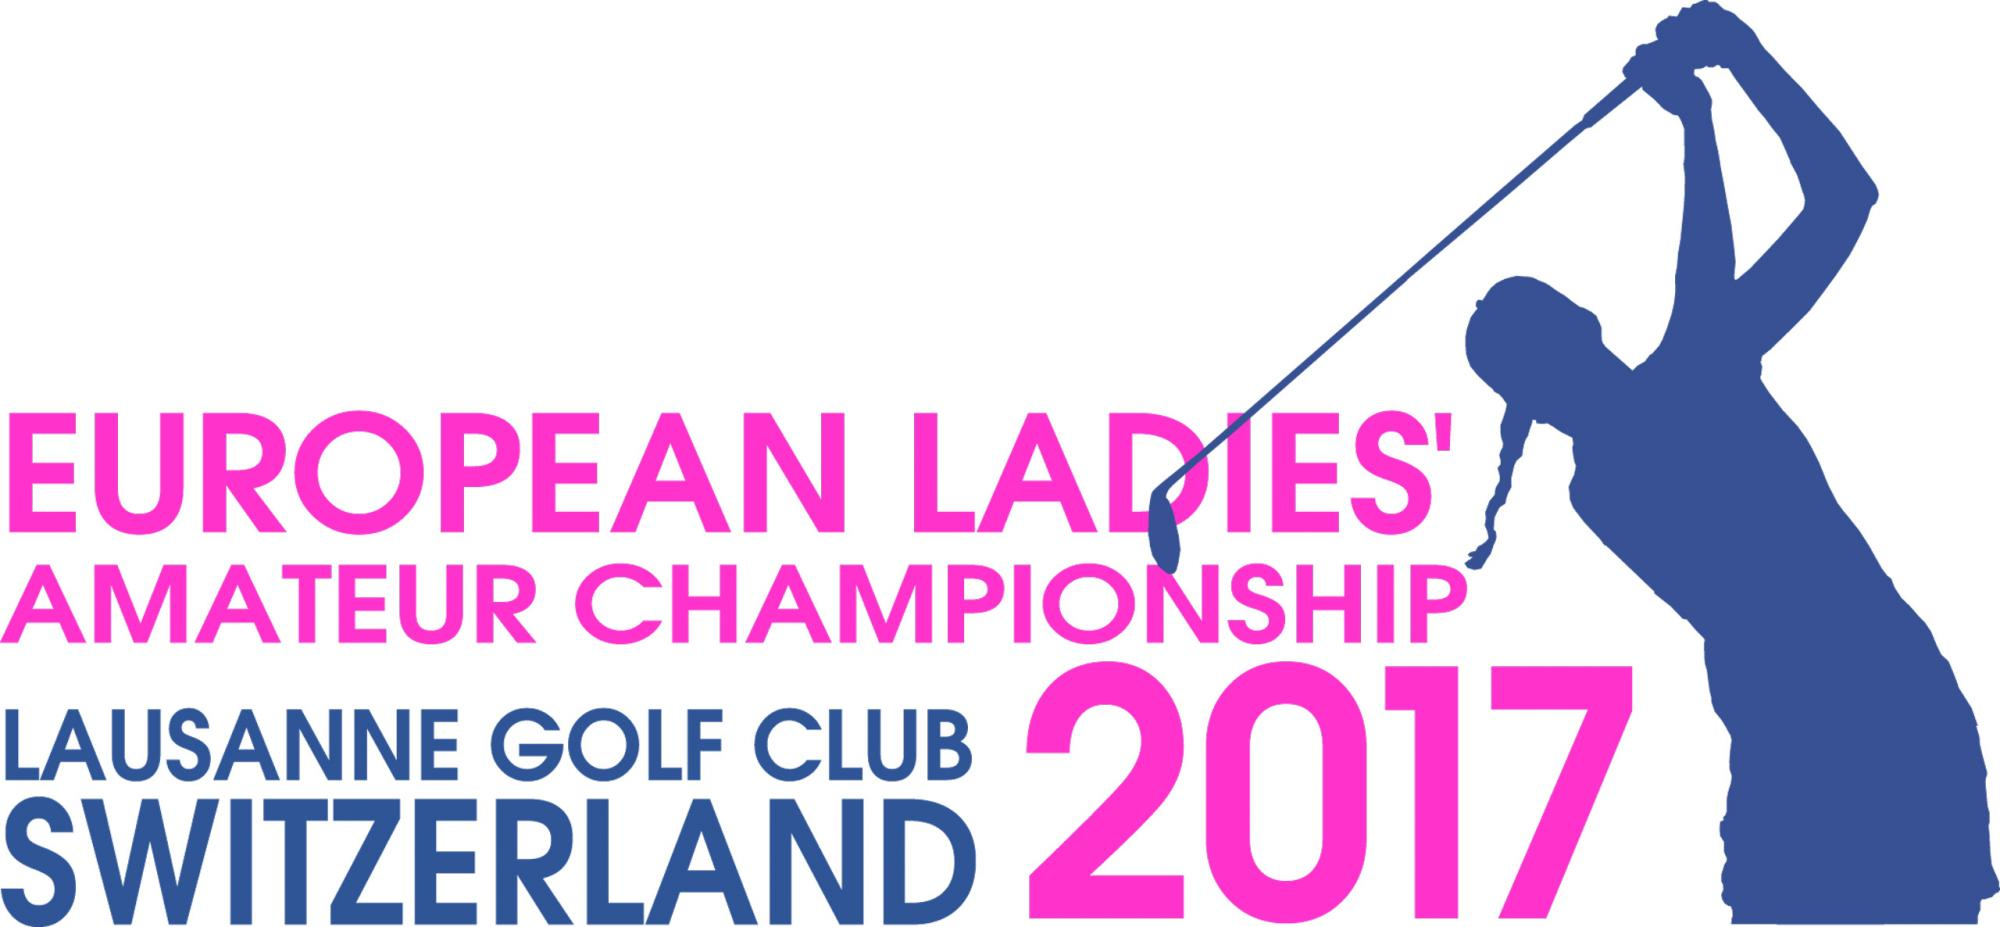 2017 EUROPEAN LADIES' AMATEUR CHAMPIONSHIP